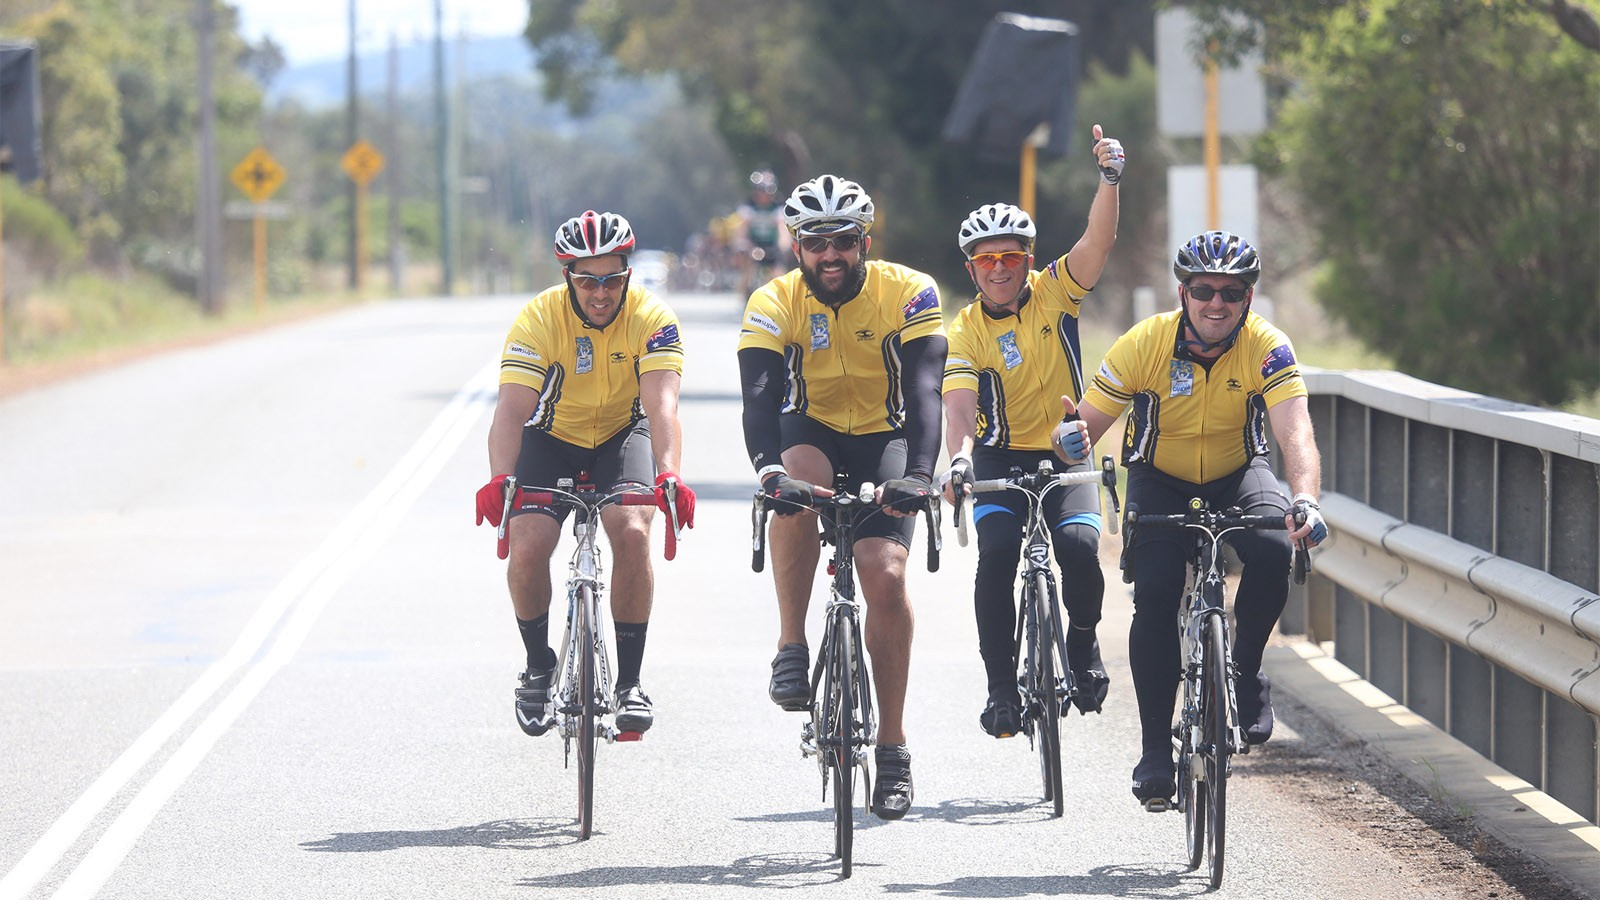 The 2015 Ride to Conquer Cancer starts in Sydney